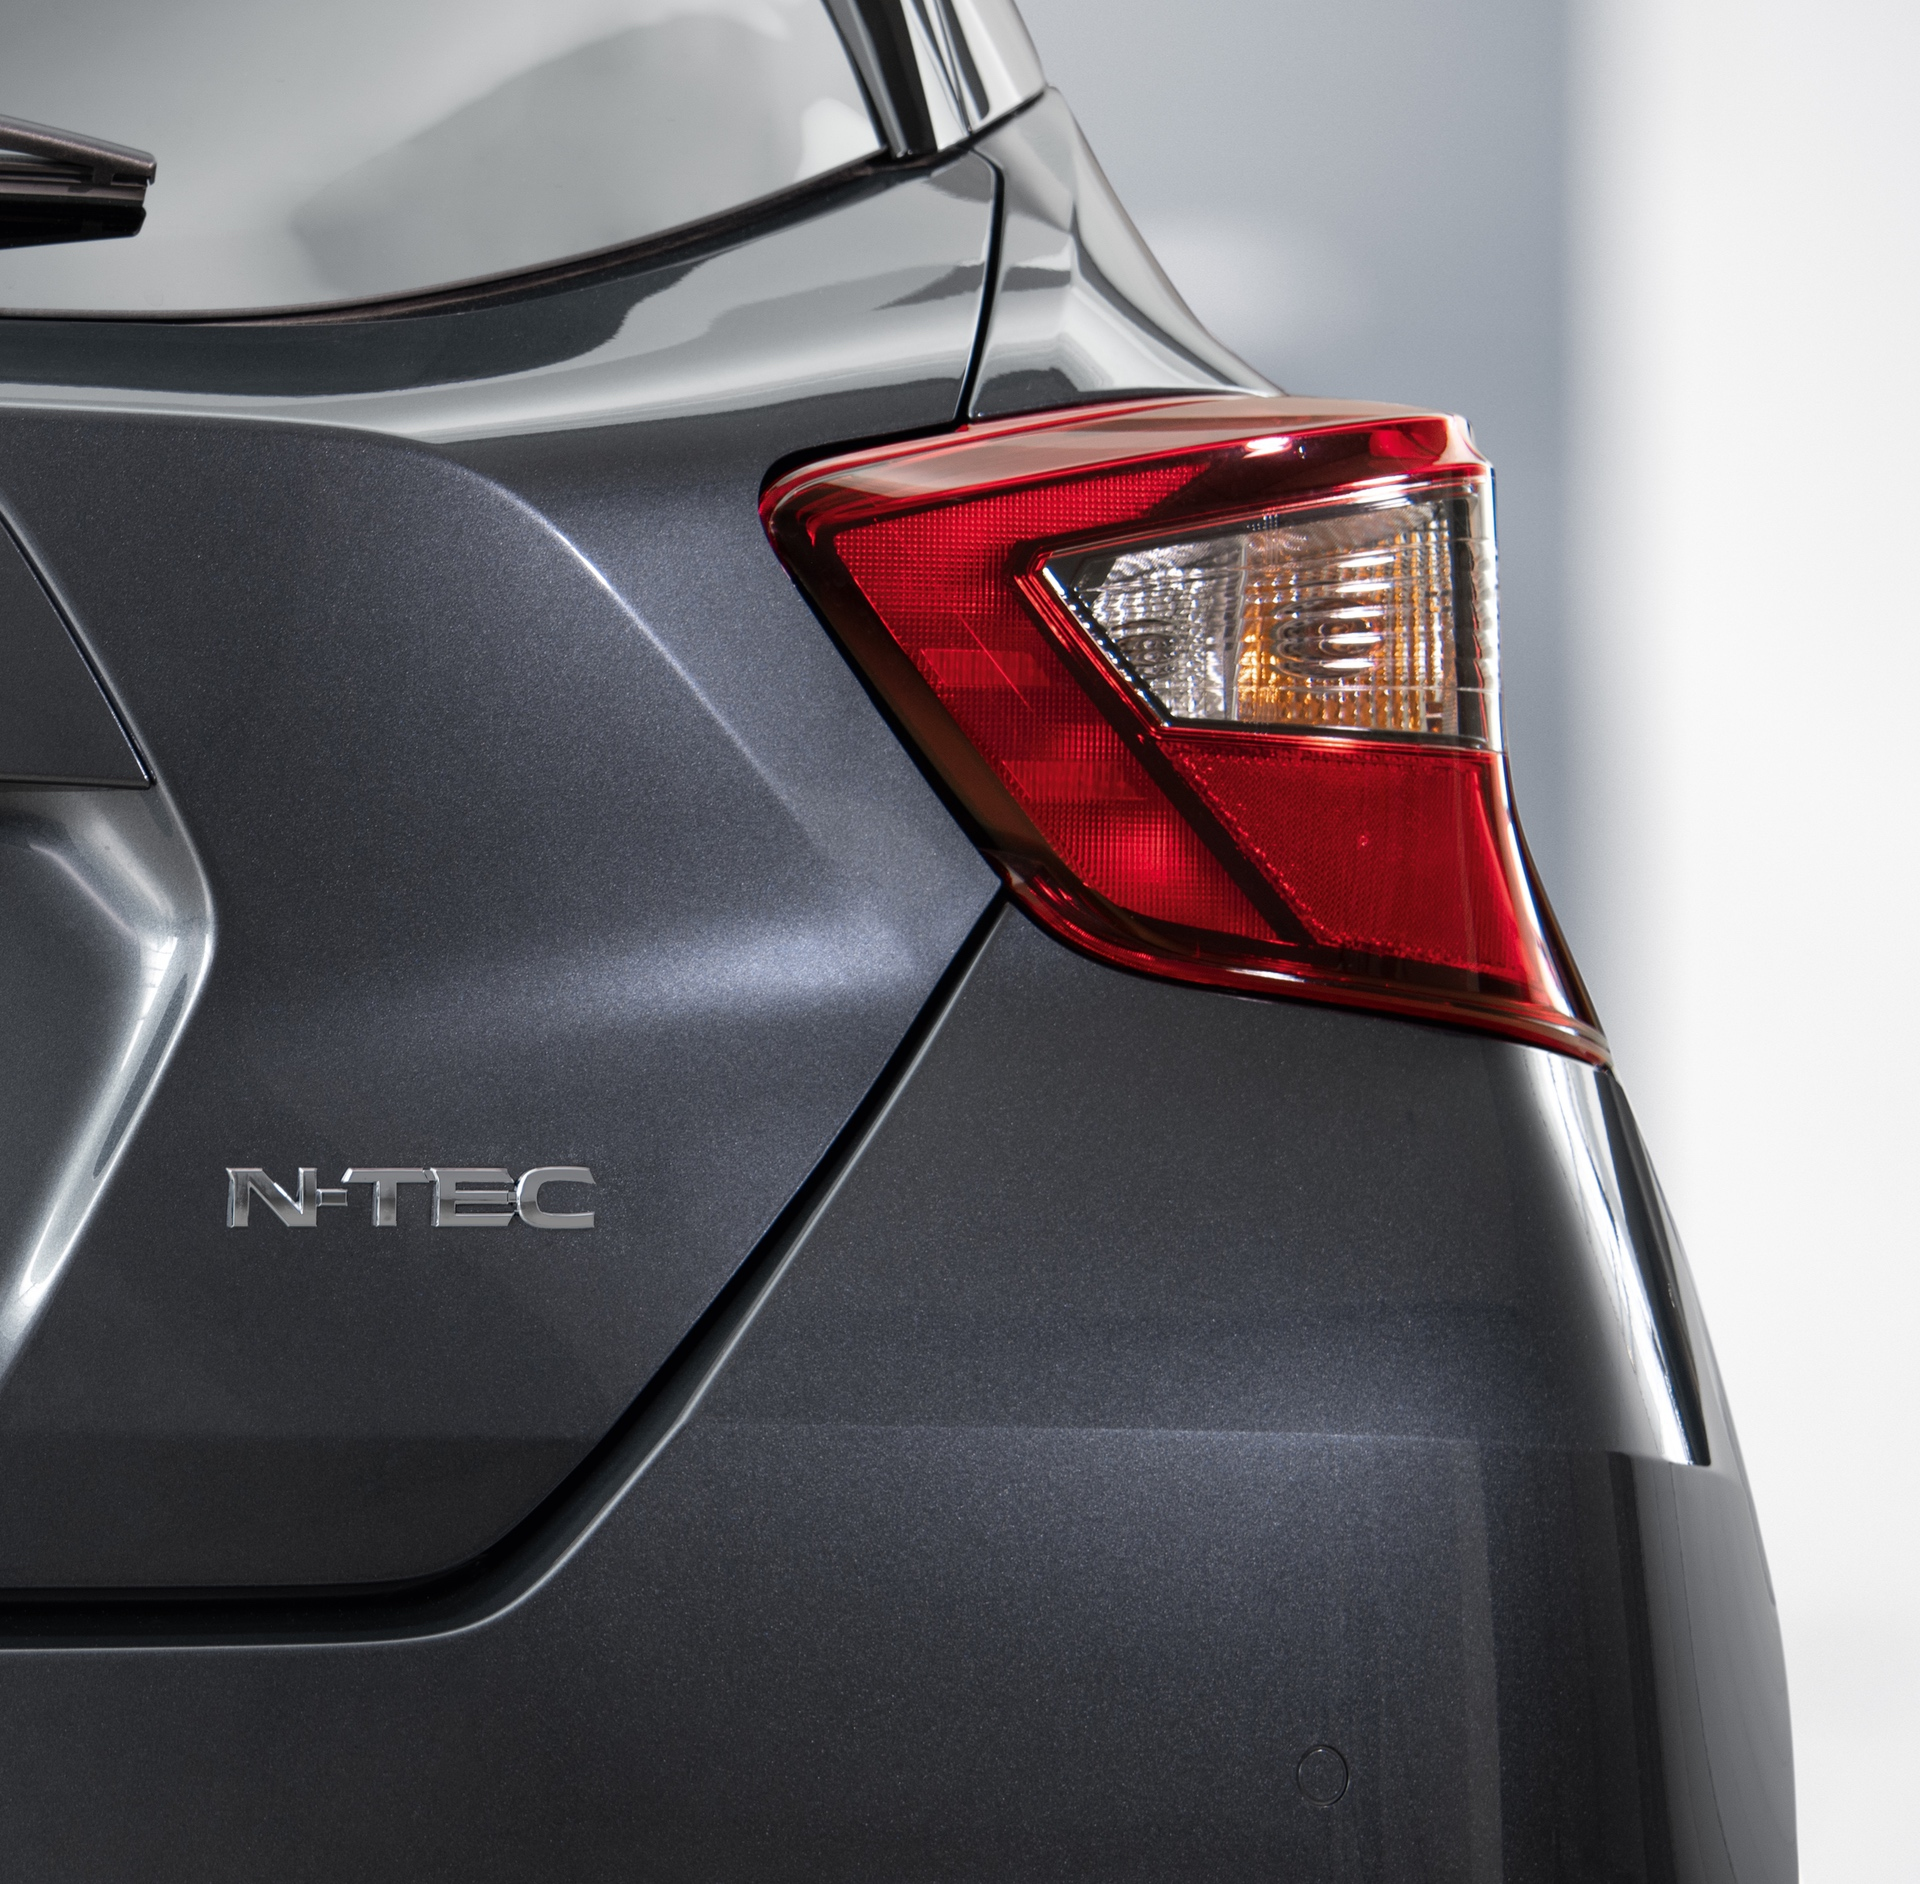 Jan.-7-10am-CET-MICRA-N-TEC-Edition-badge